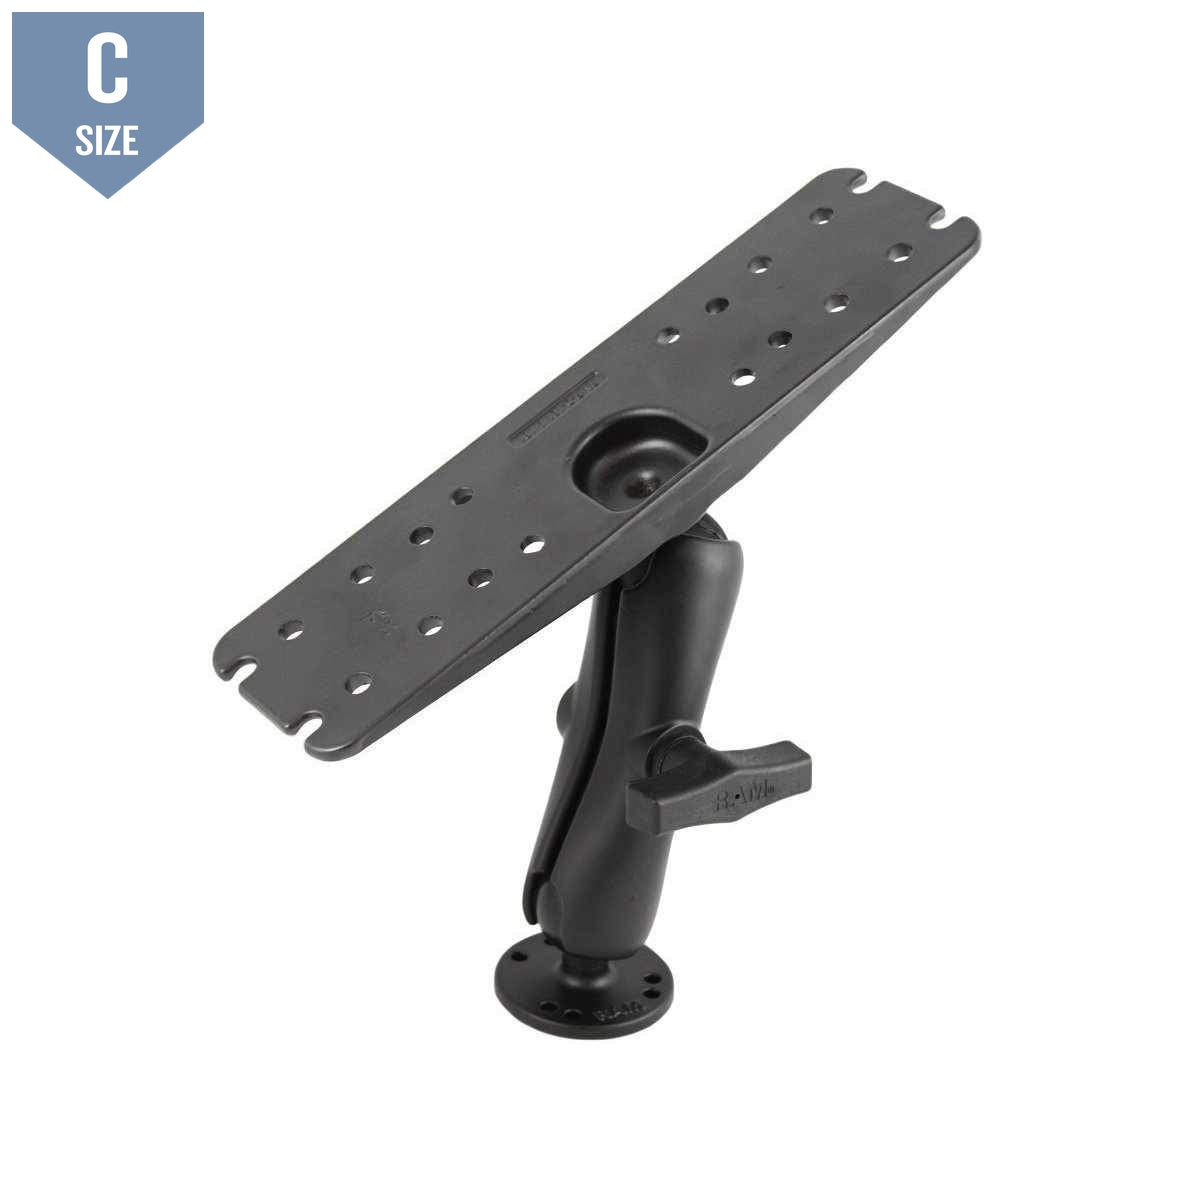 "RAM Marine Mount with 3"" x 11"" Plate (RAM-137U) - Modest Mounts"